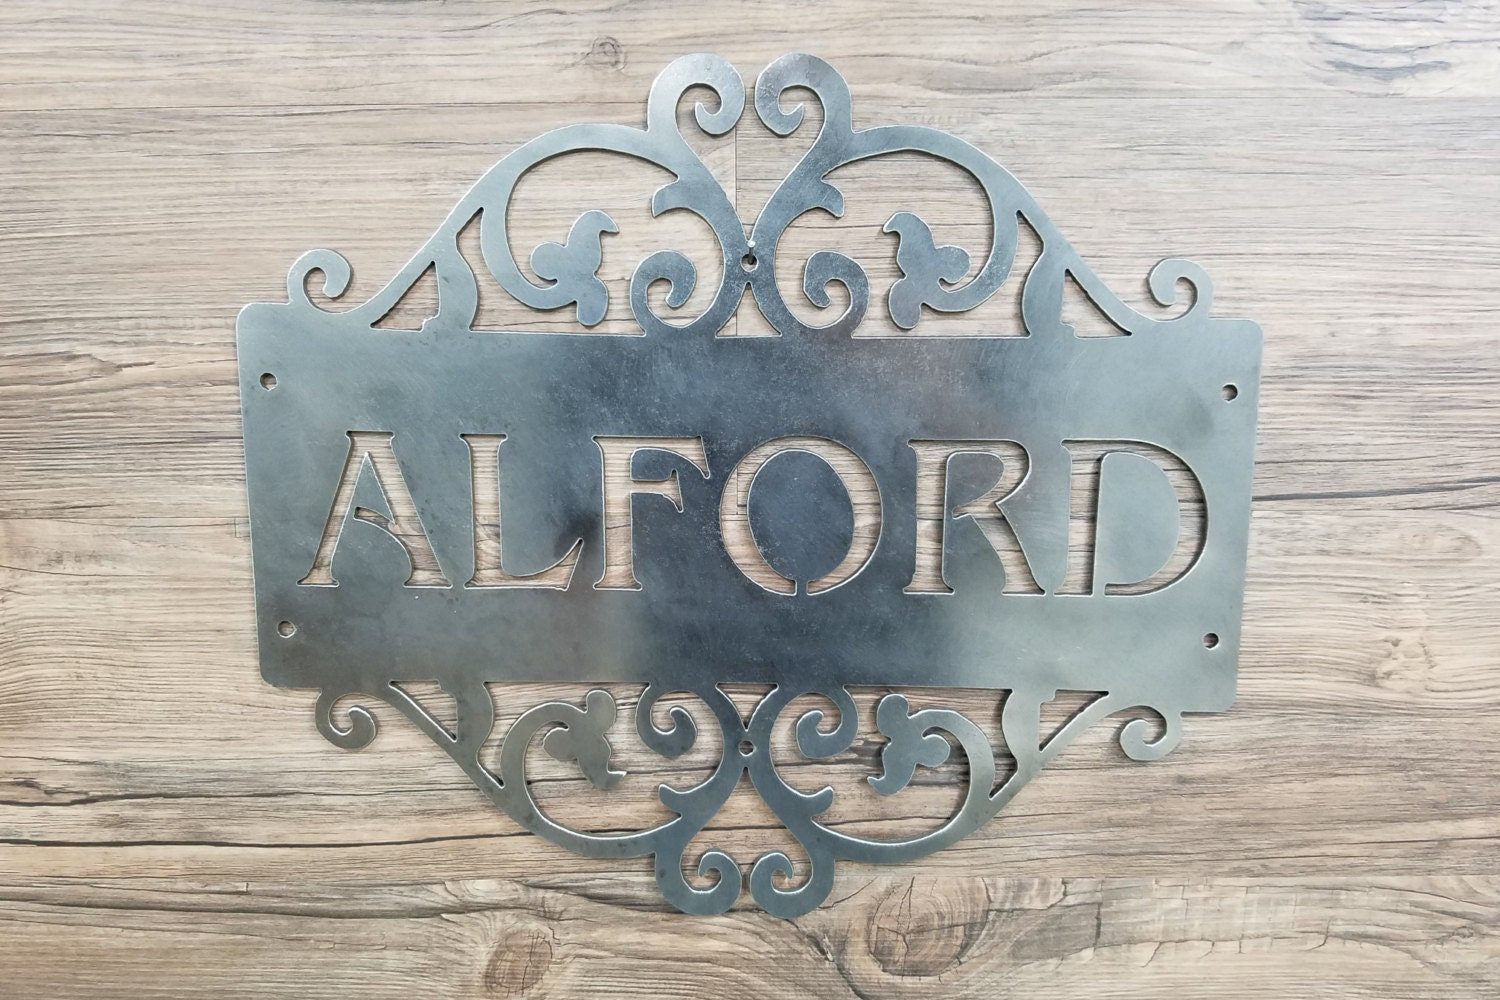 Family name plate home decor wall art metal art can be etsy - Brass name plate designs for home ...